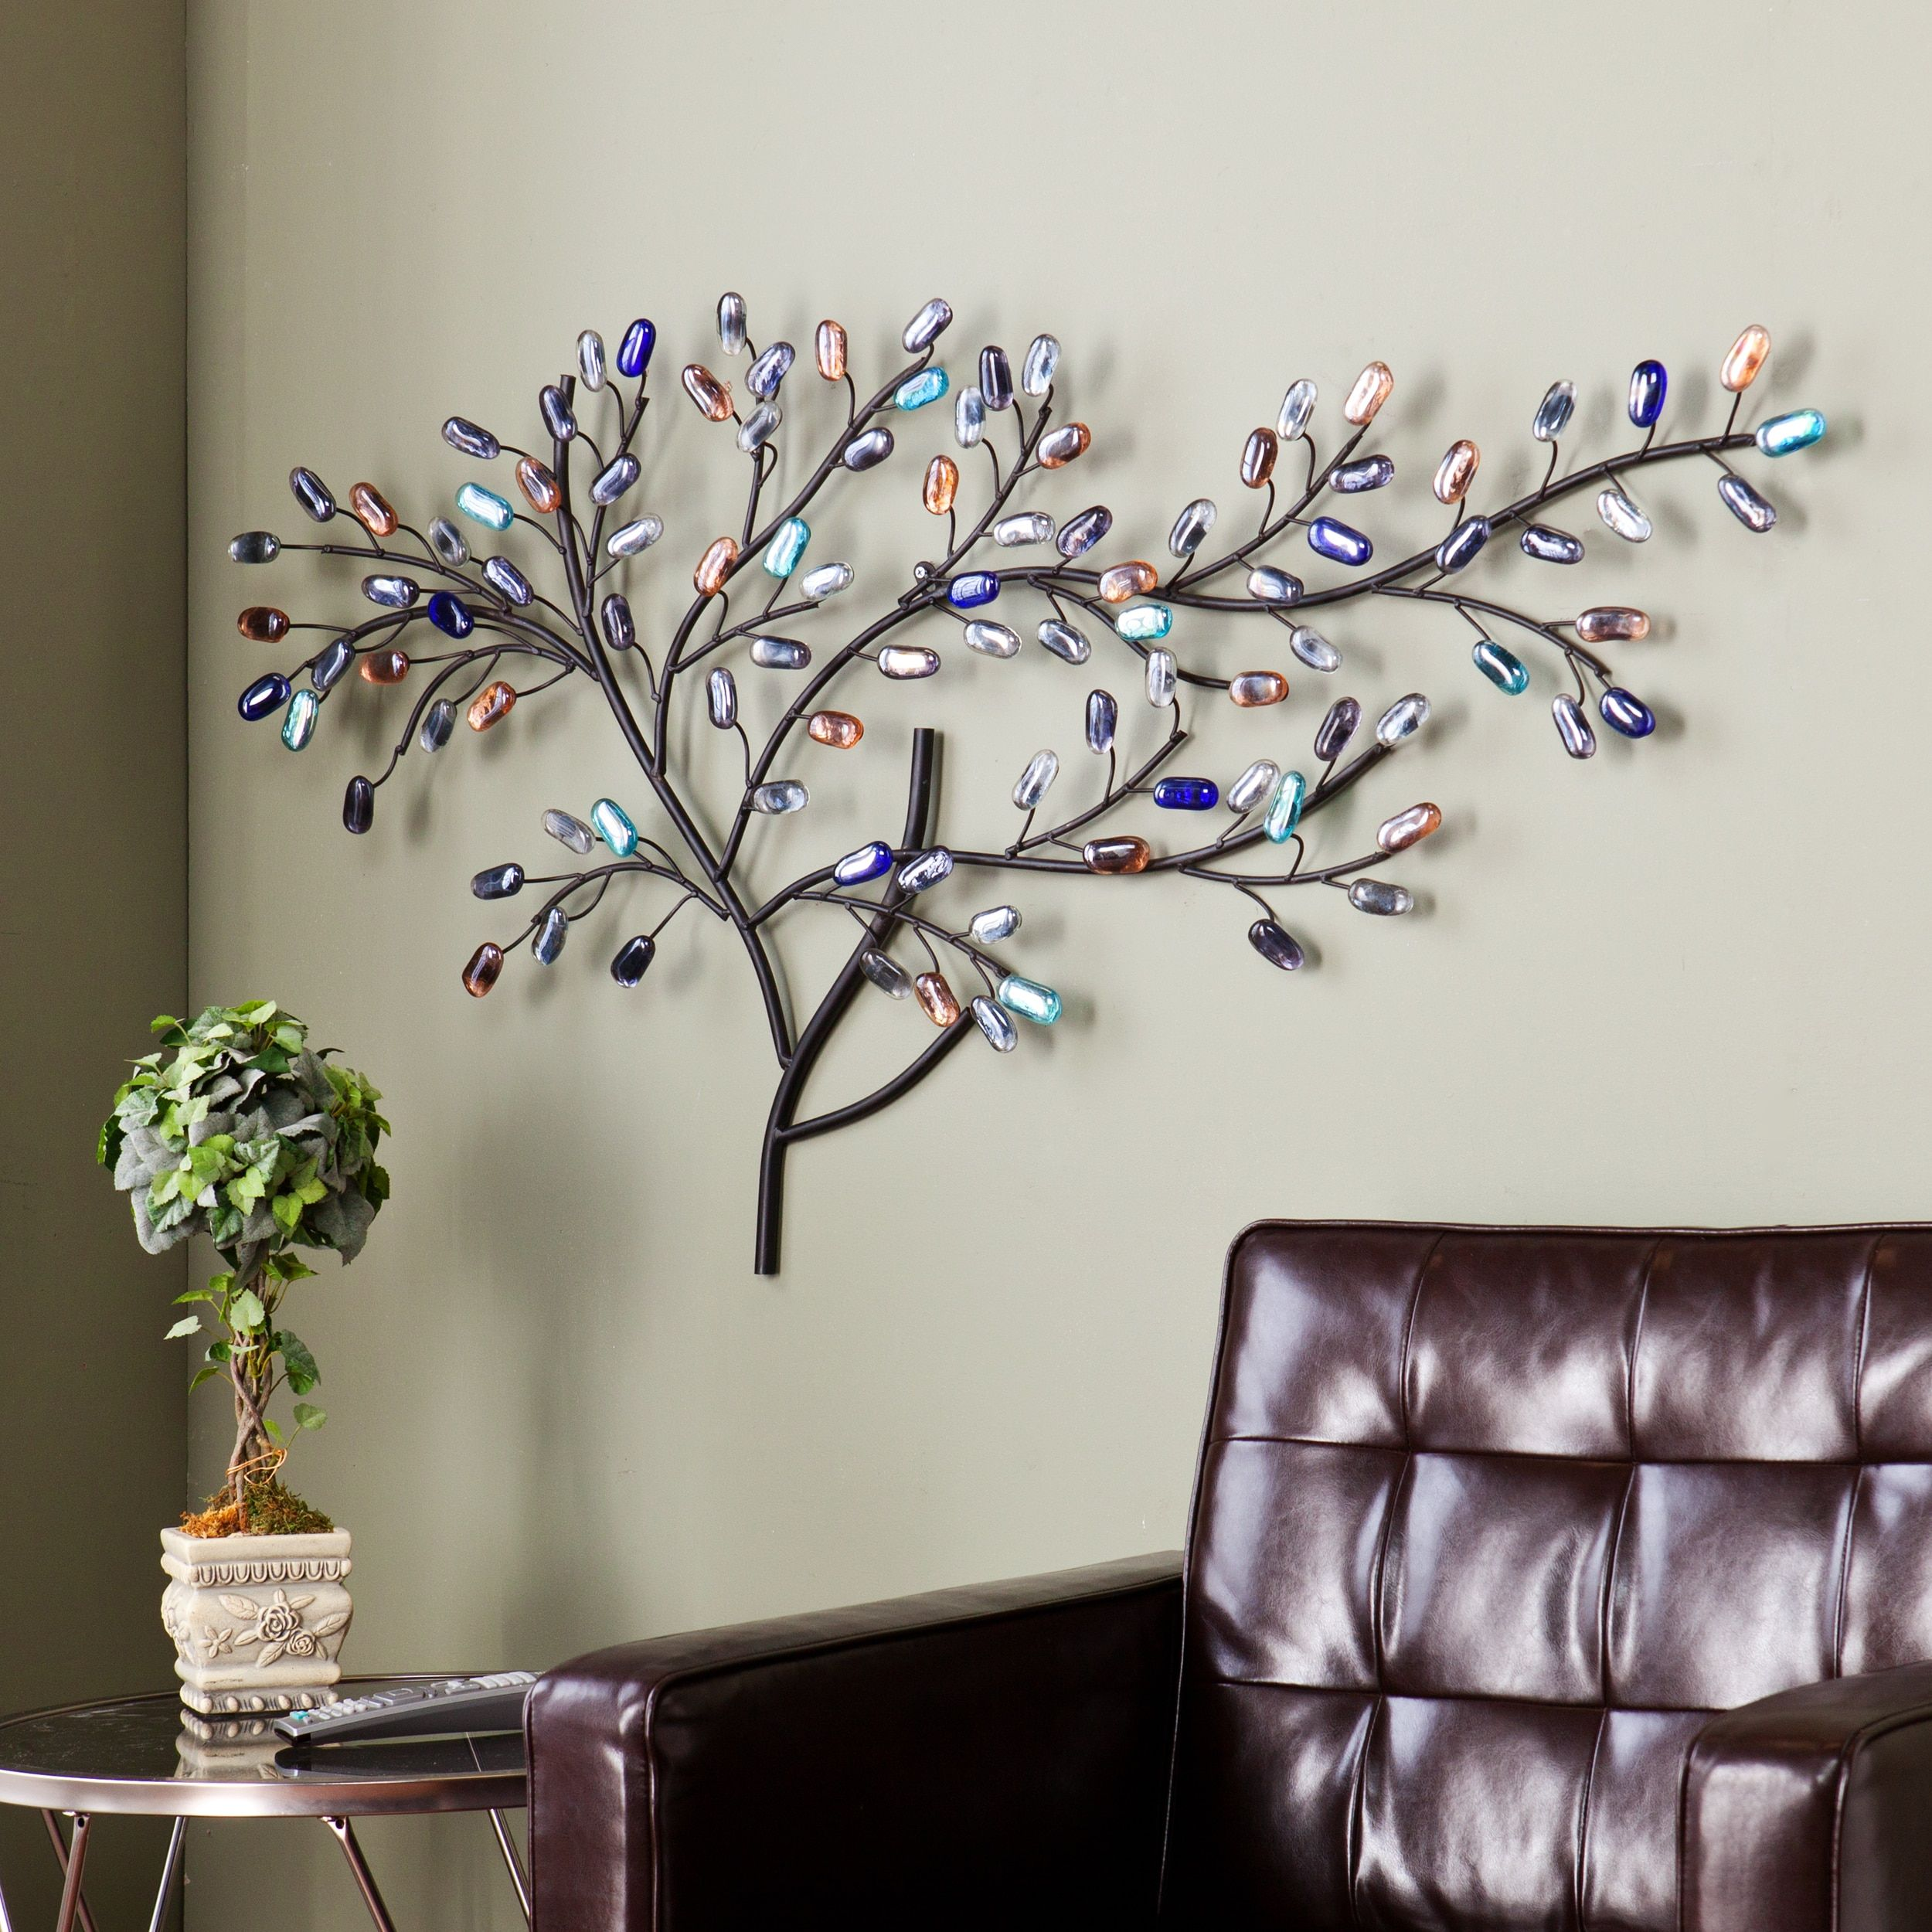 Harper blvd willow multicolor metal glass tree wall sculpture overstock com shopping